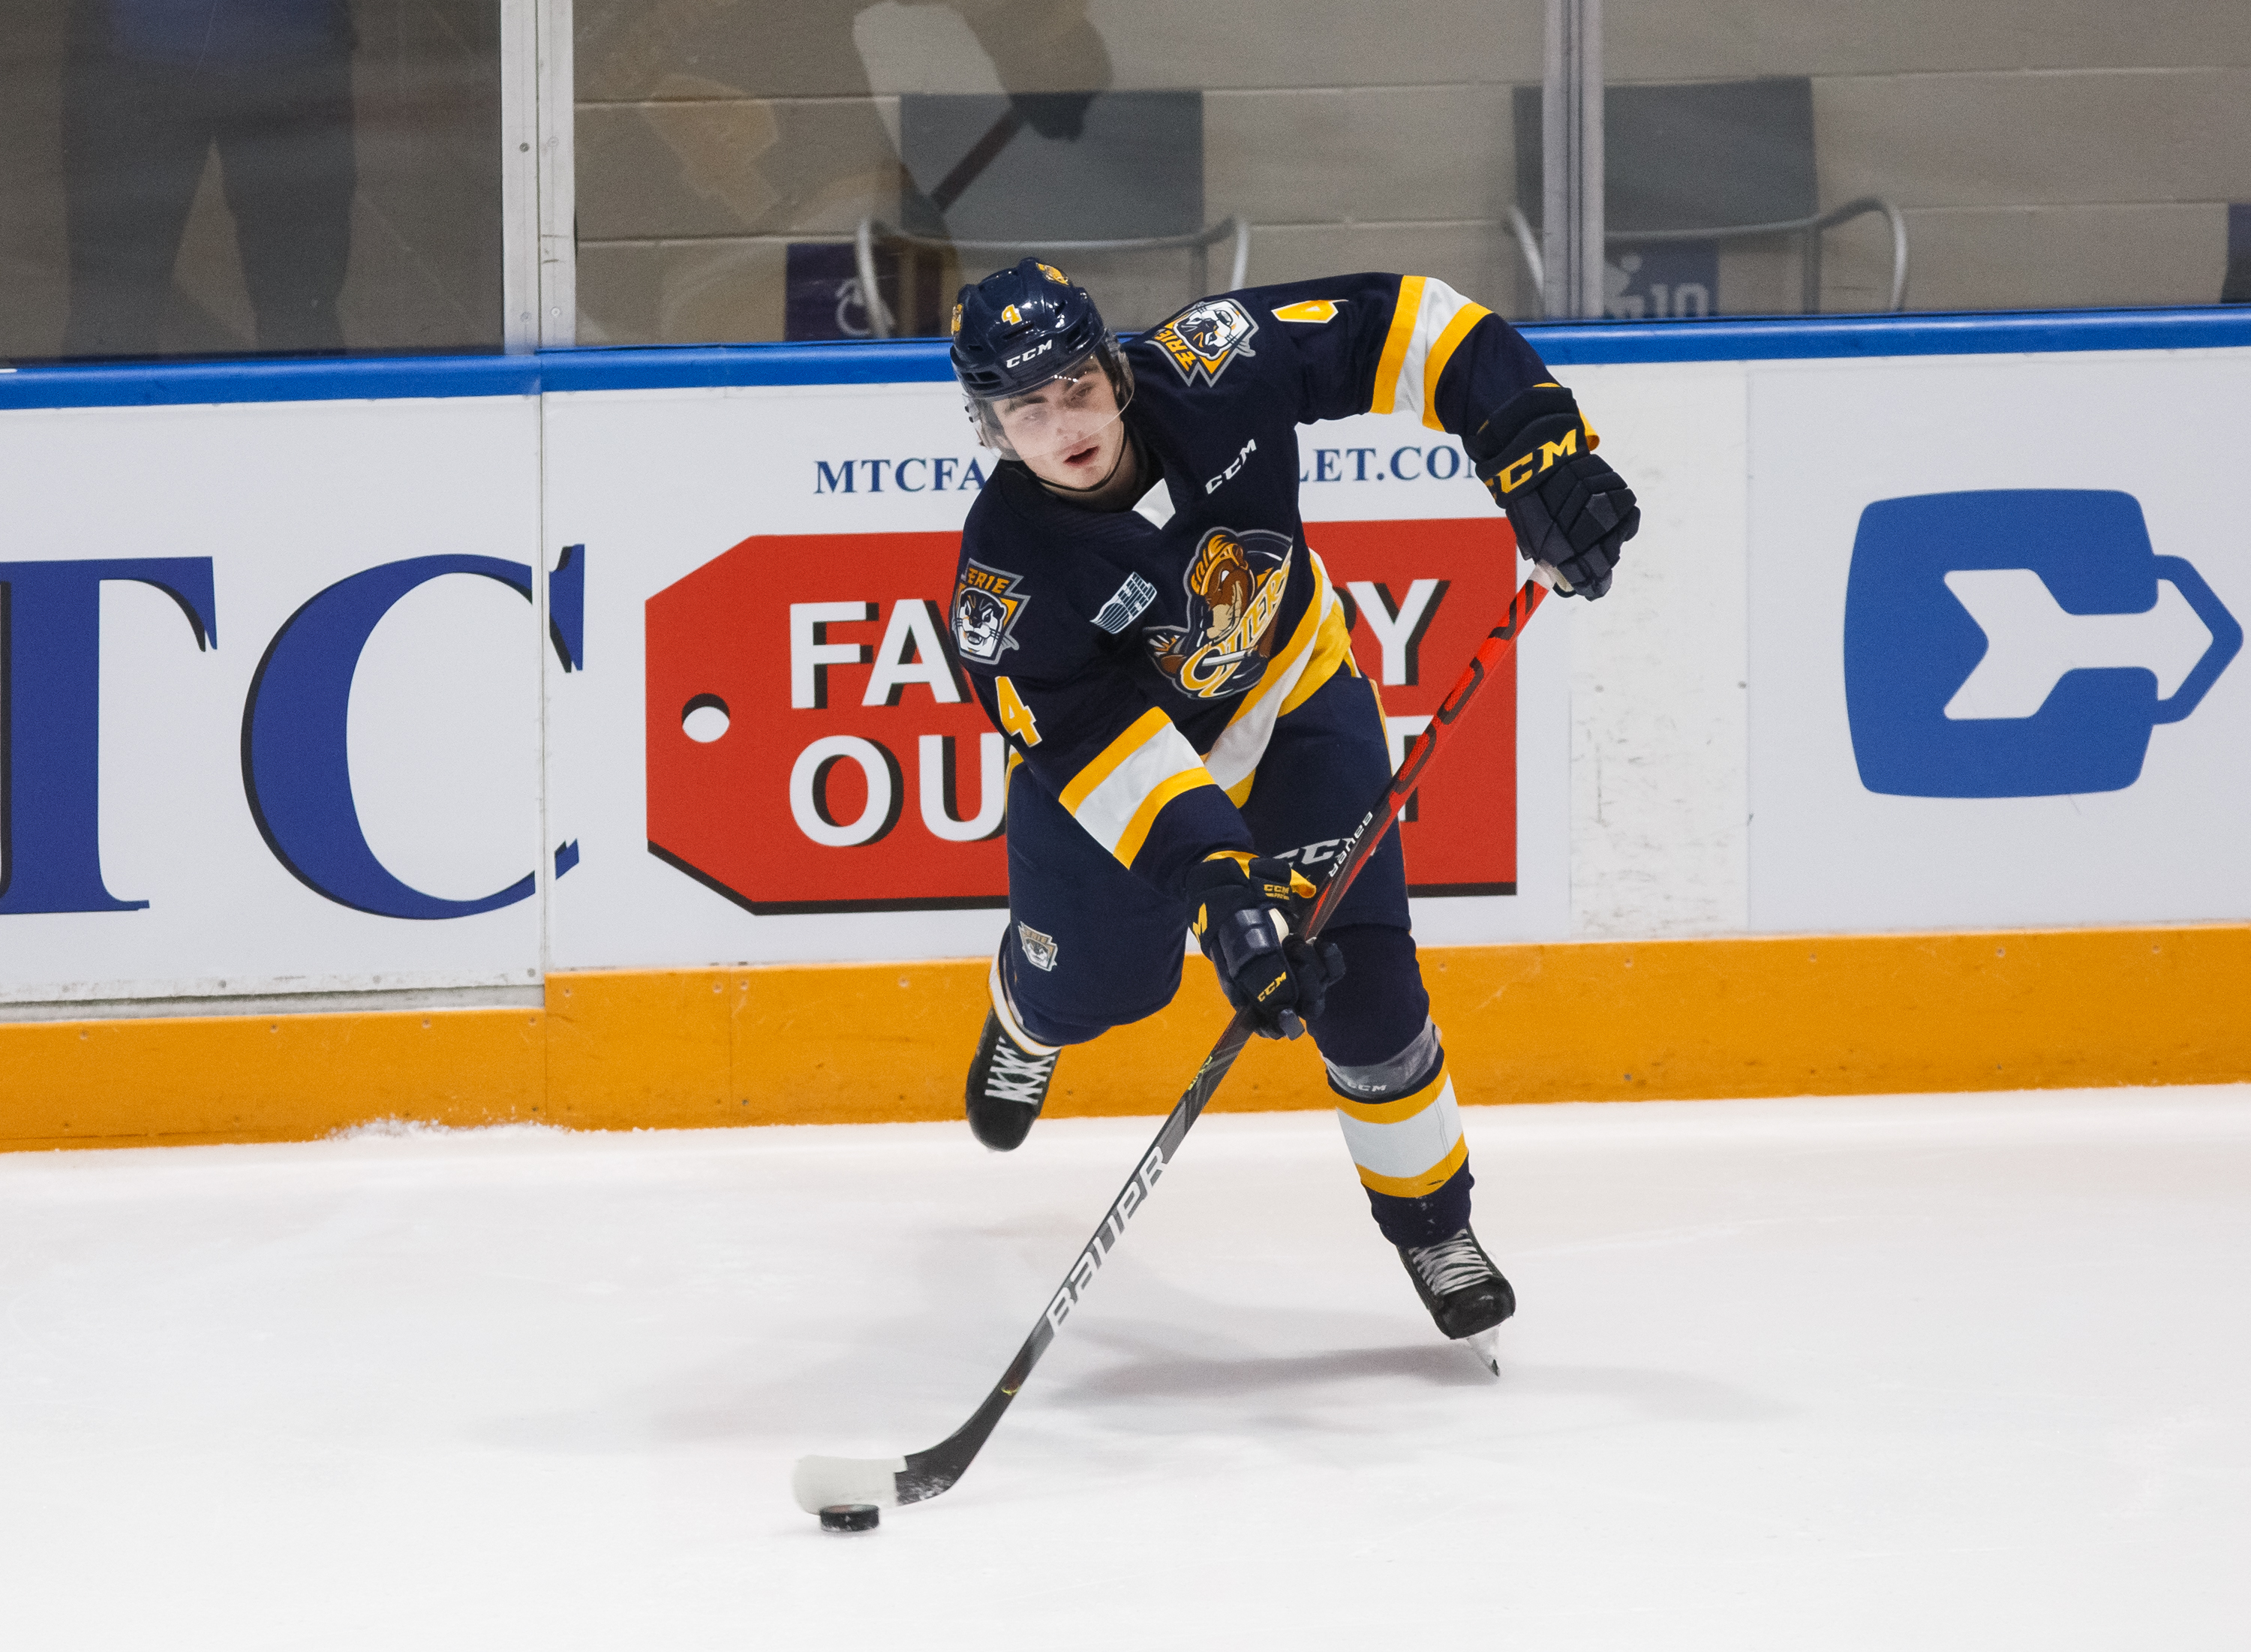 Jamie Drysdale #4 of the Erie Otters passes the puck during an OHL game against the Oshawa Generals at the Tribute Communities Centre on November 22, 2019 in Oshawa, Ontario, Canada.